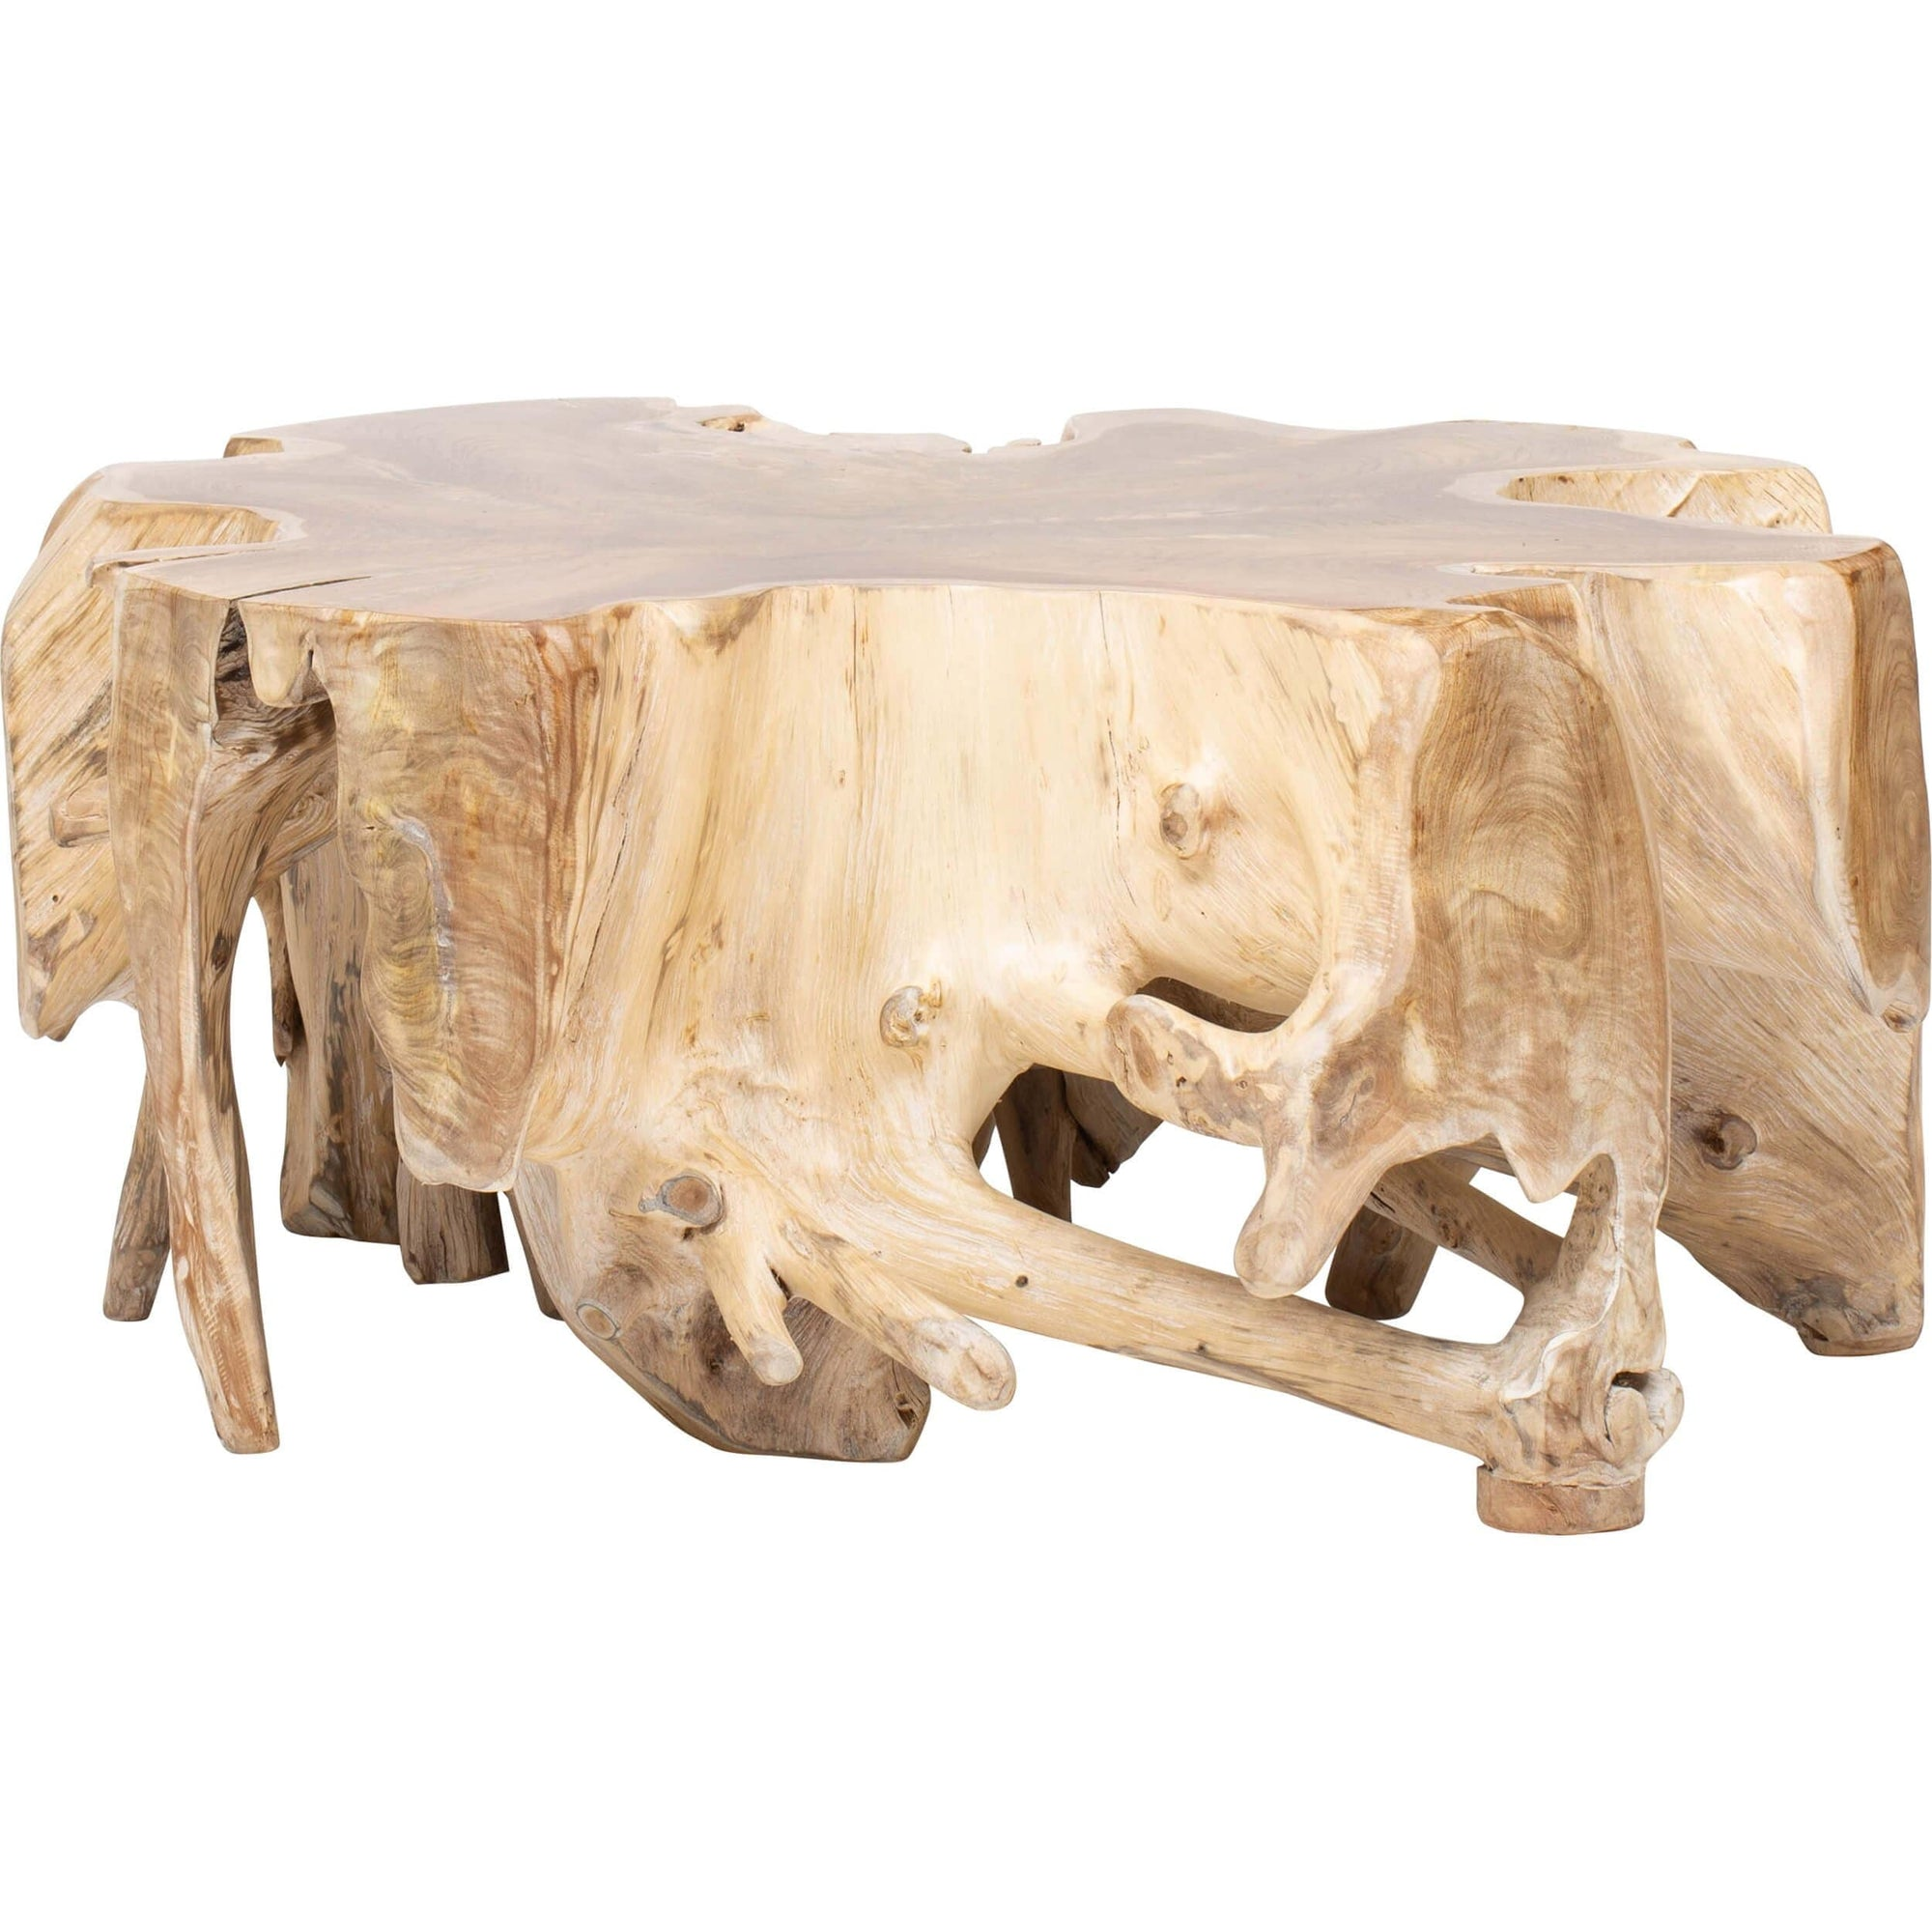 Awe Inspiring Cypress Root Coffee Table High Fashion Home Camellatalisay Diy Chair Ideas Camellatalisaycom